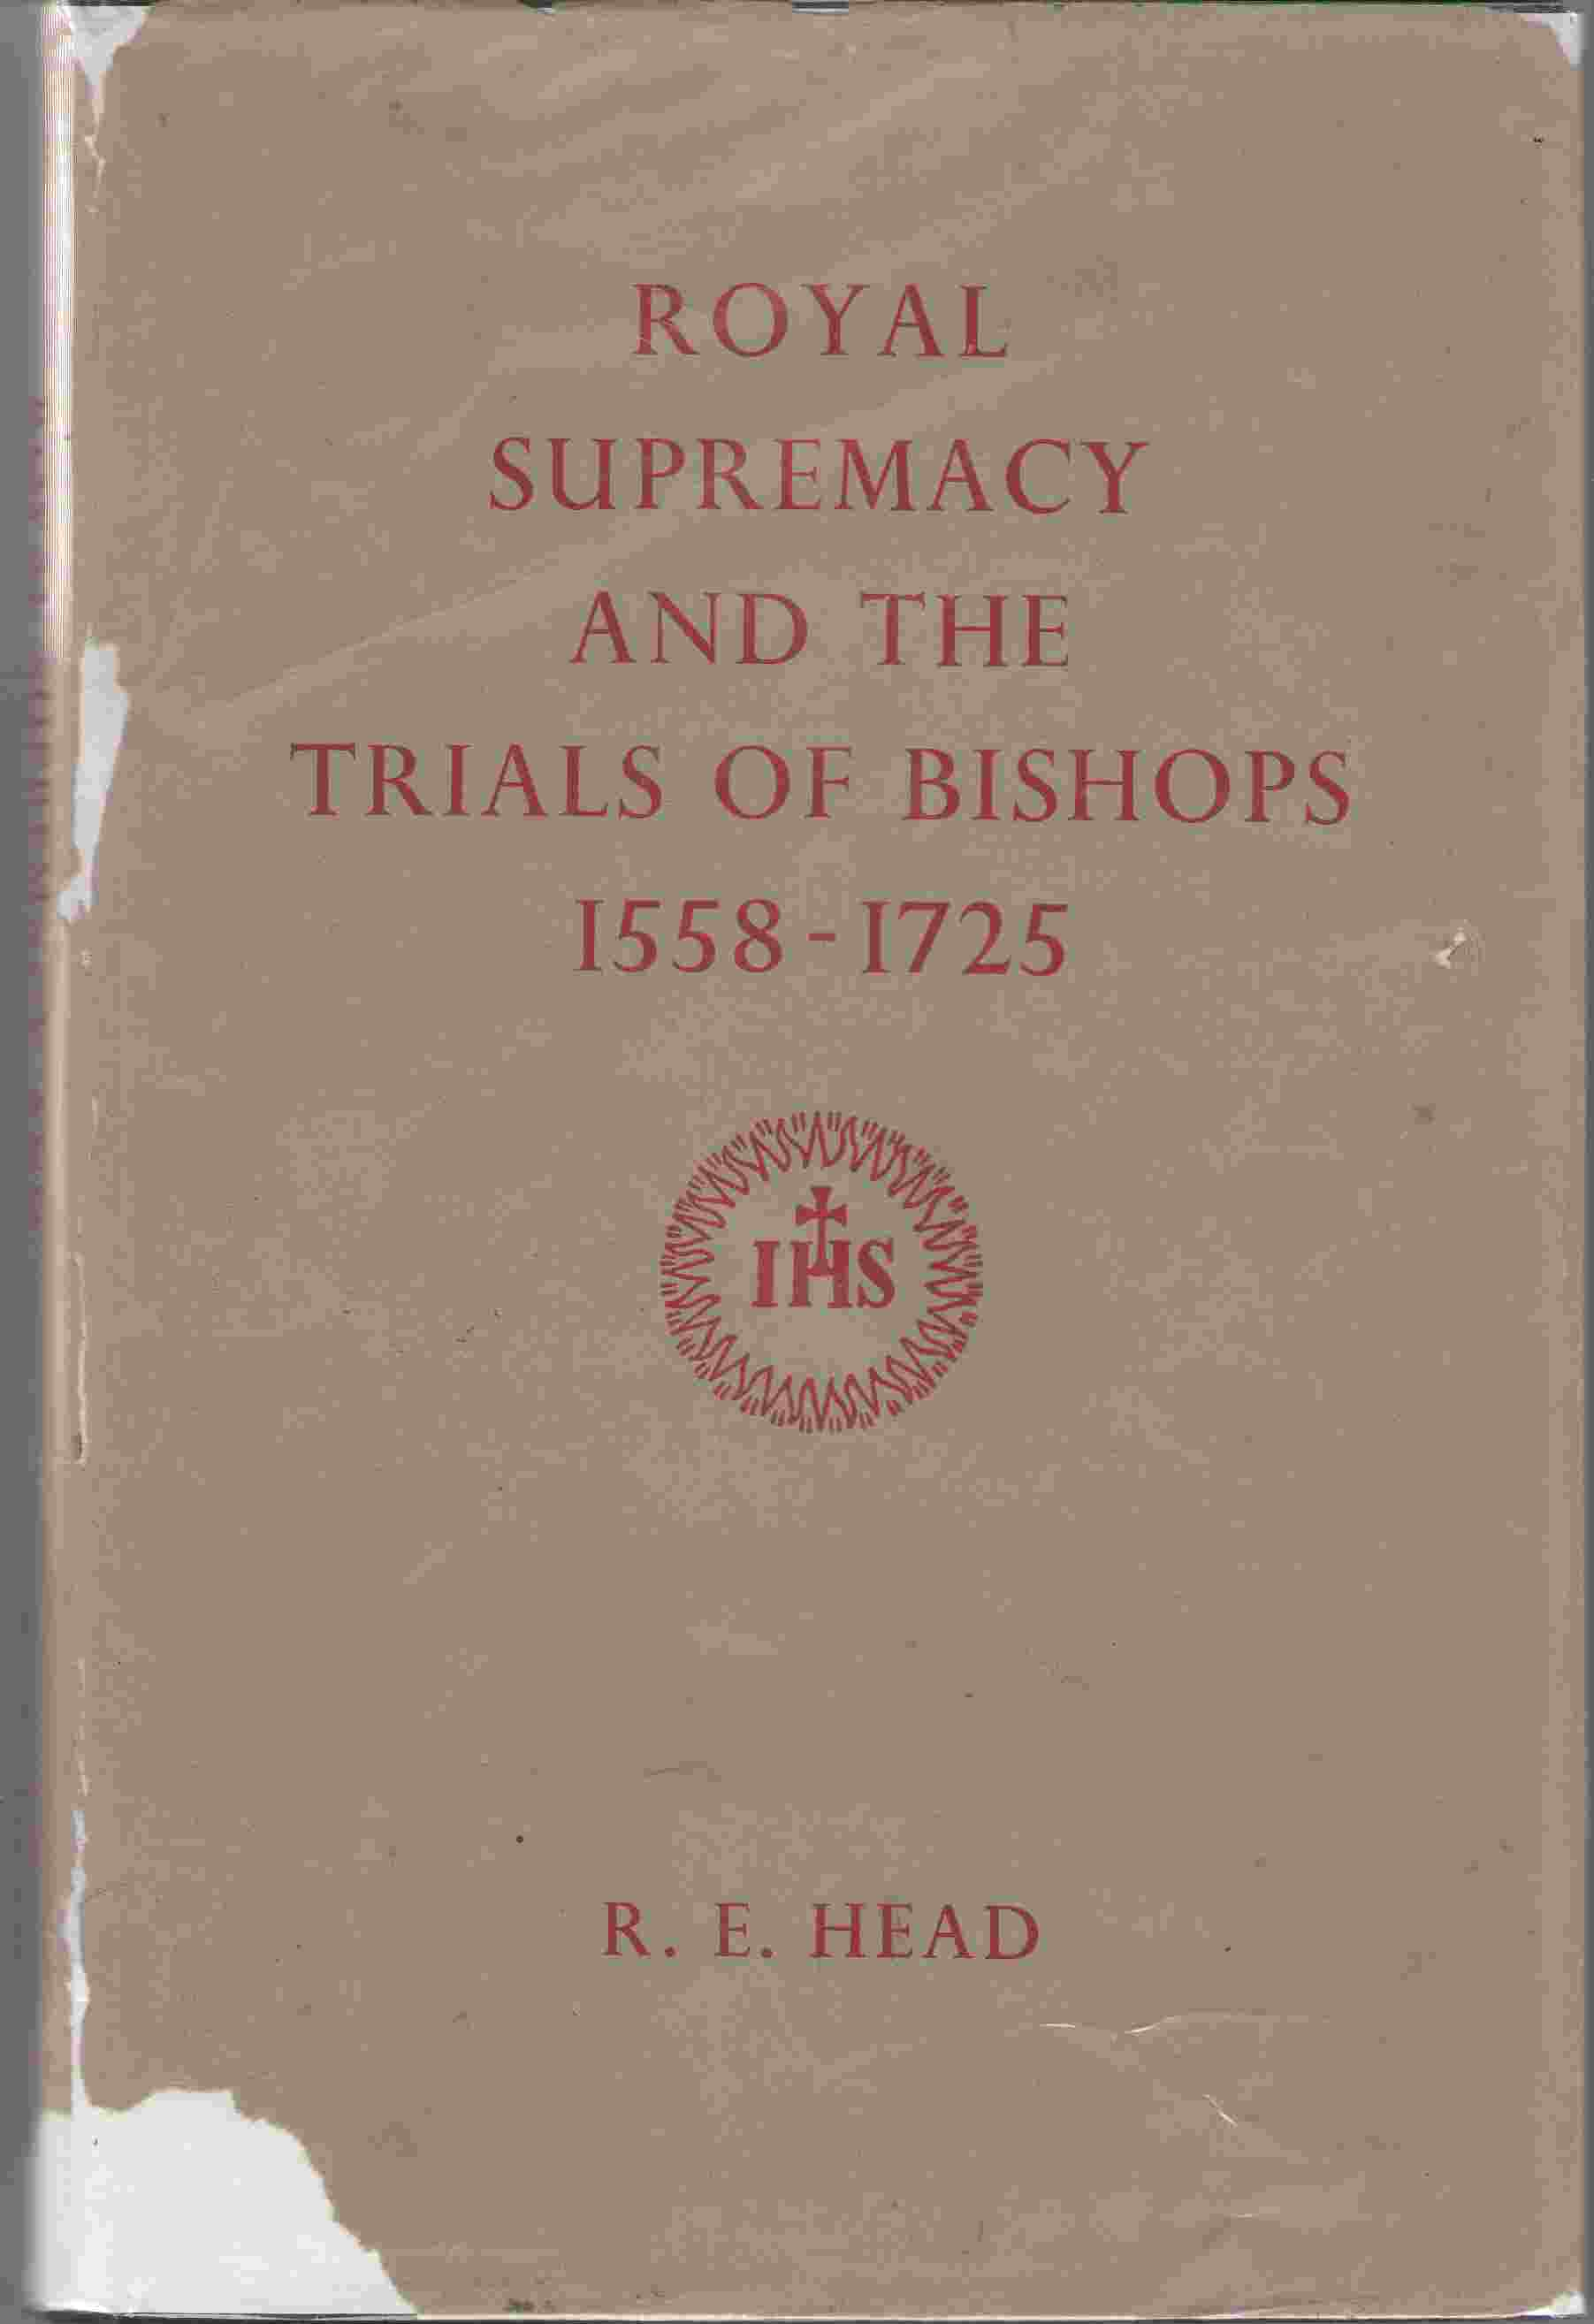 Royal Supremacy and the Trials of Bishops, 1558-1725, Head, R. E.